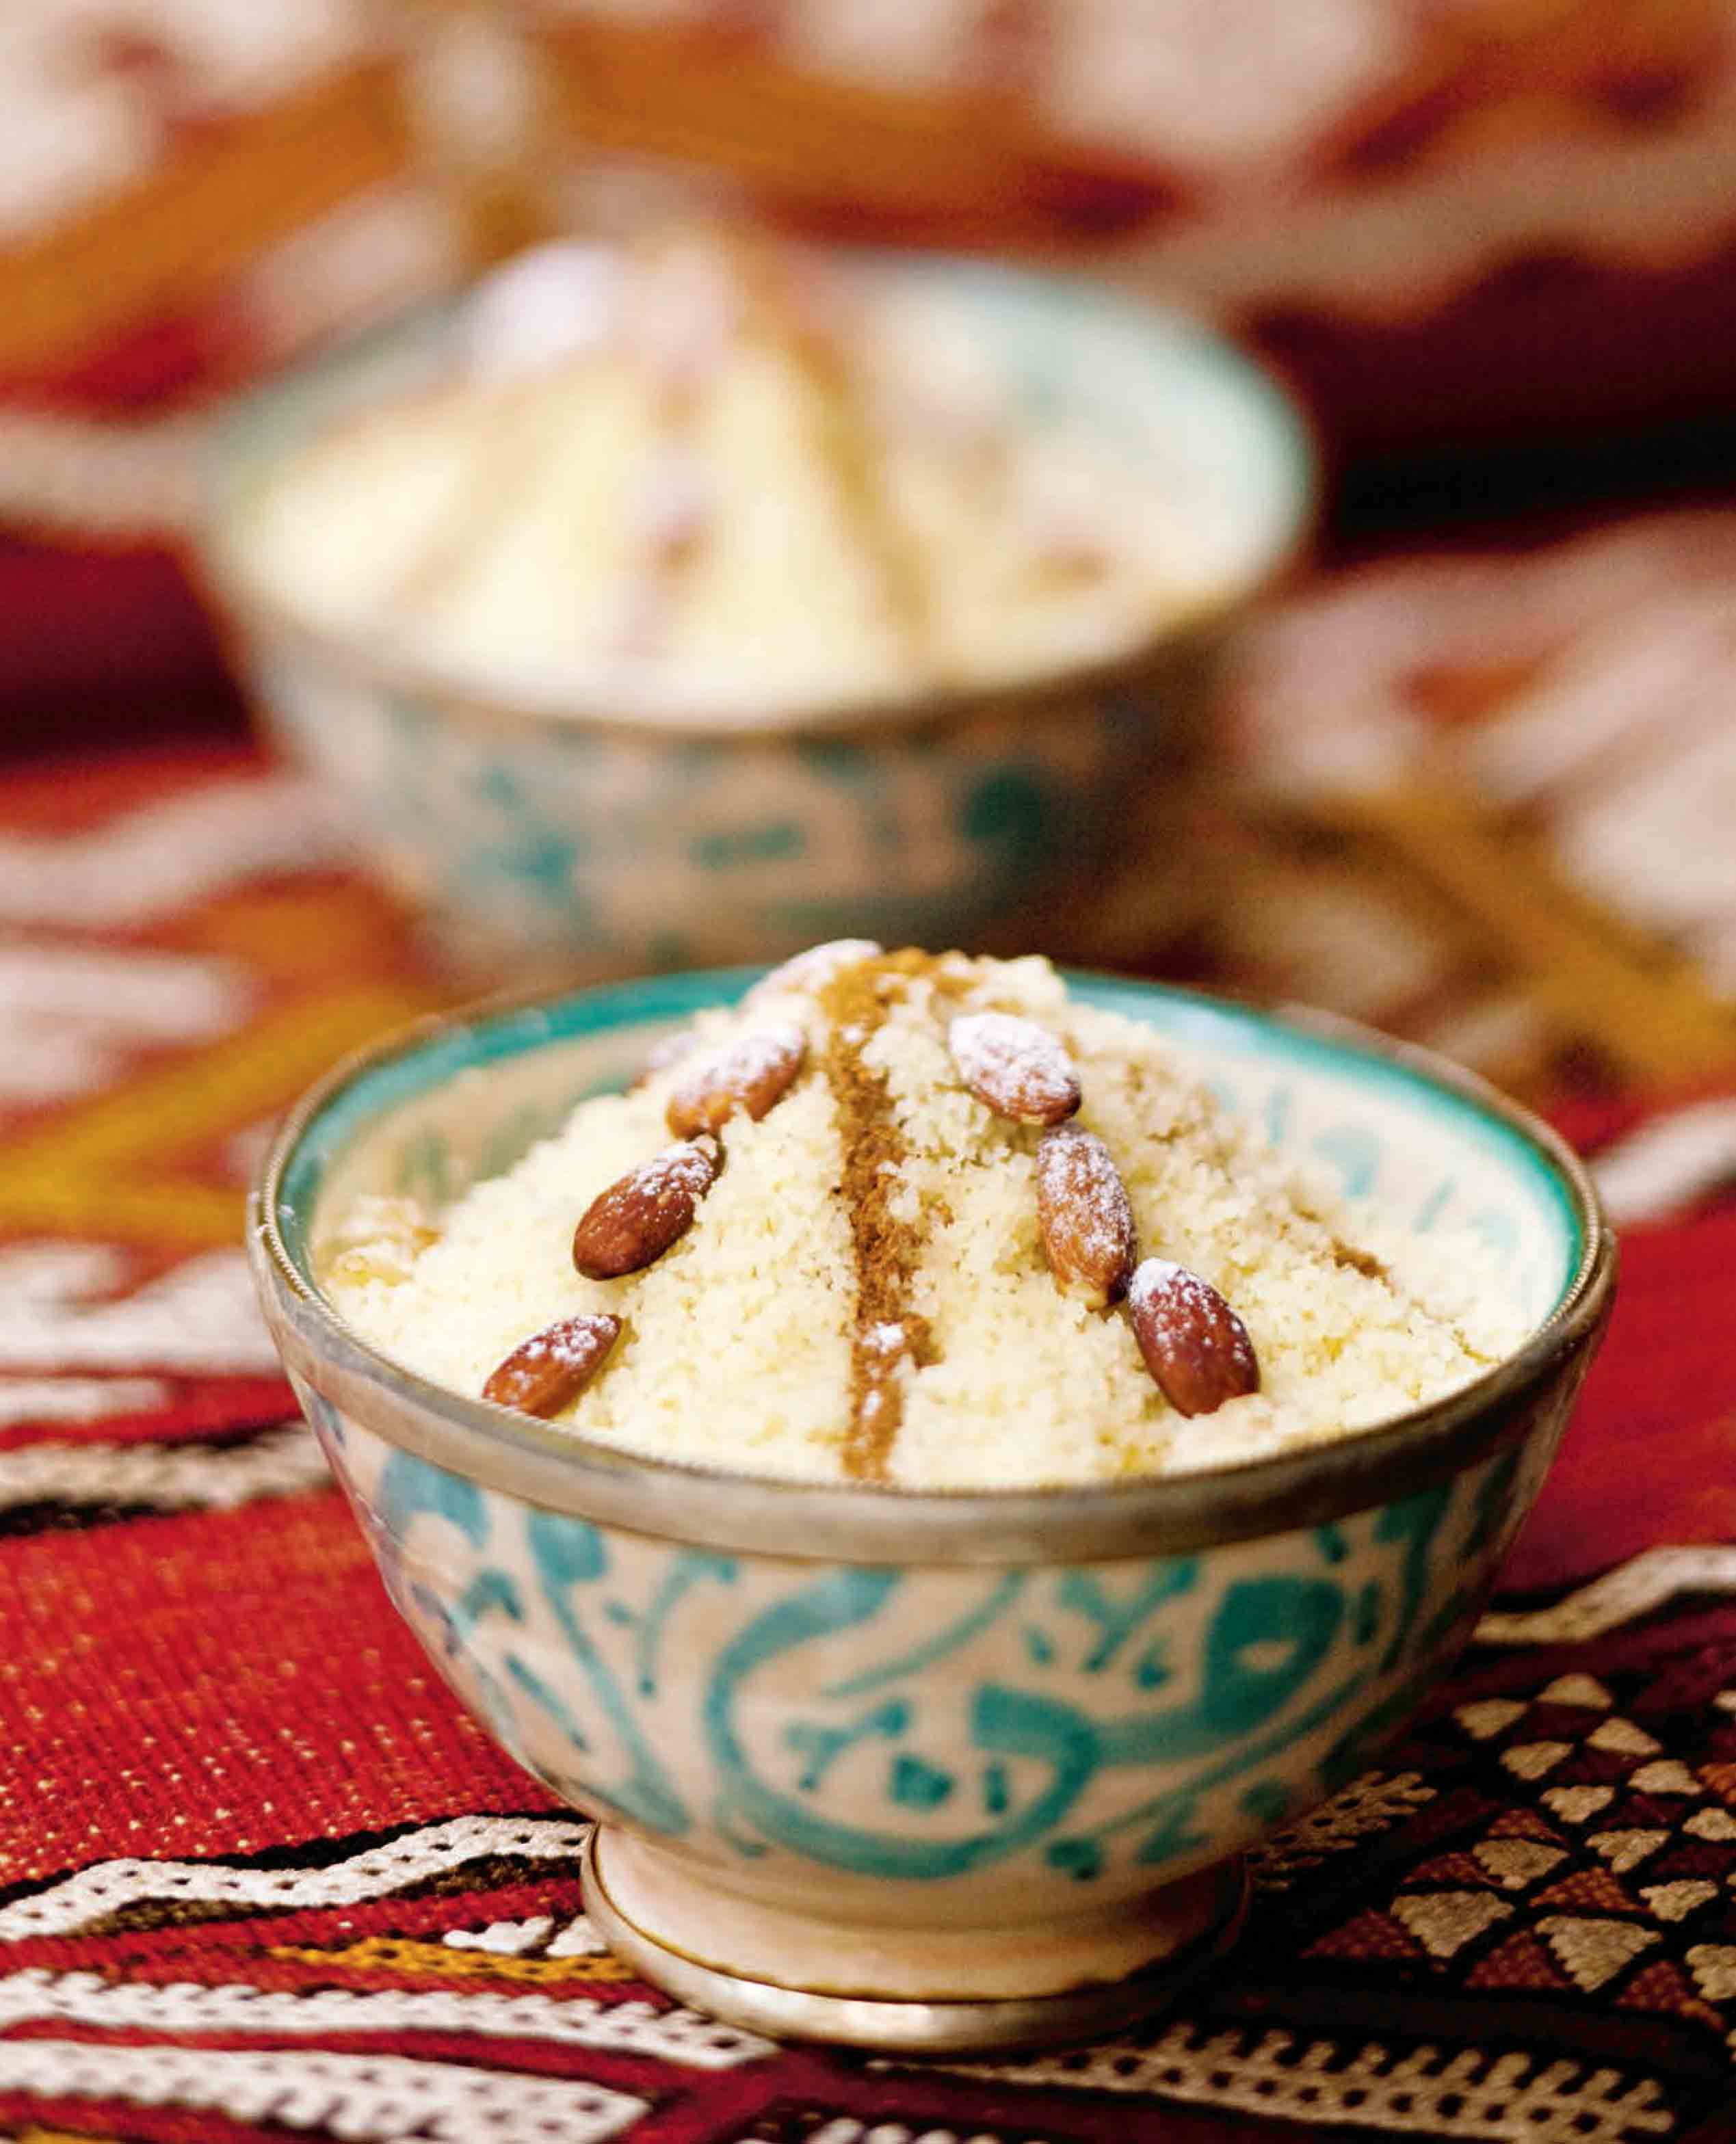 Dessert couscous with sultanas